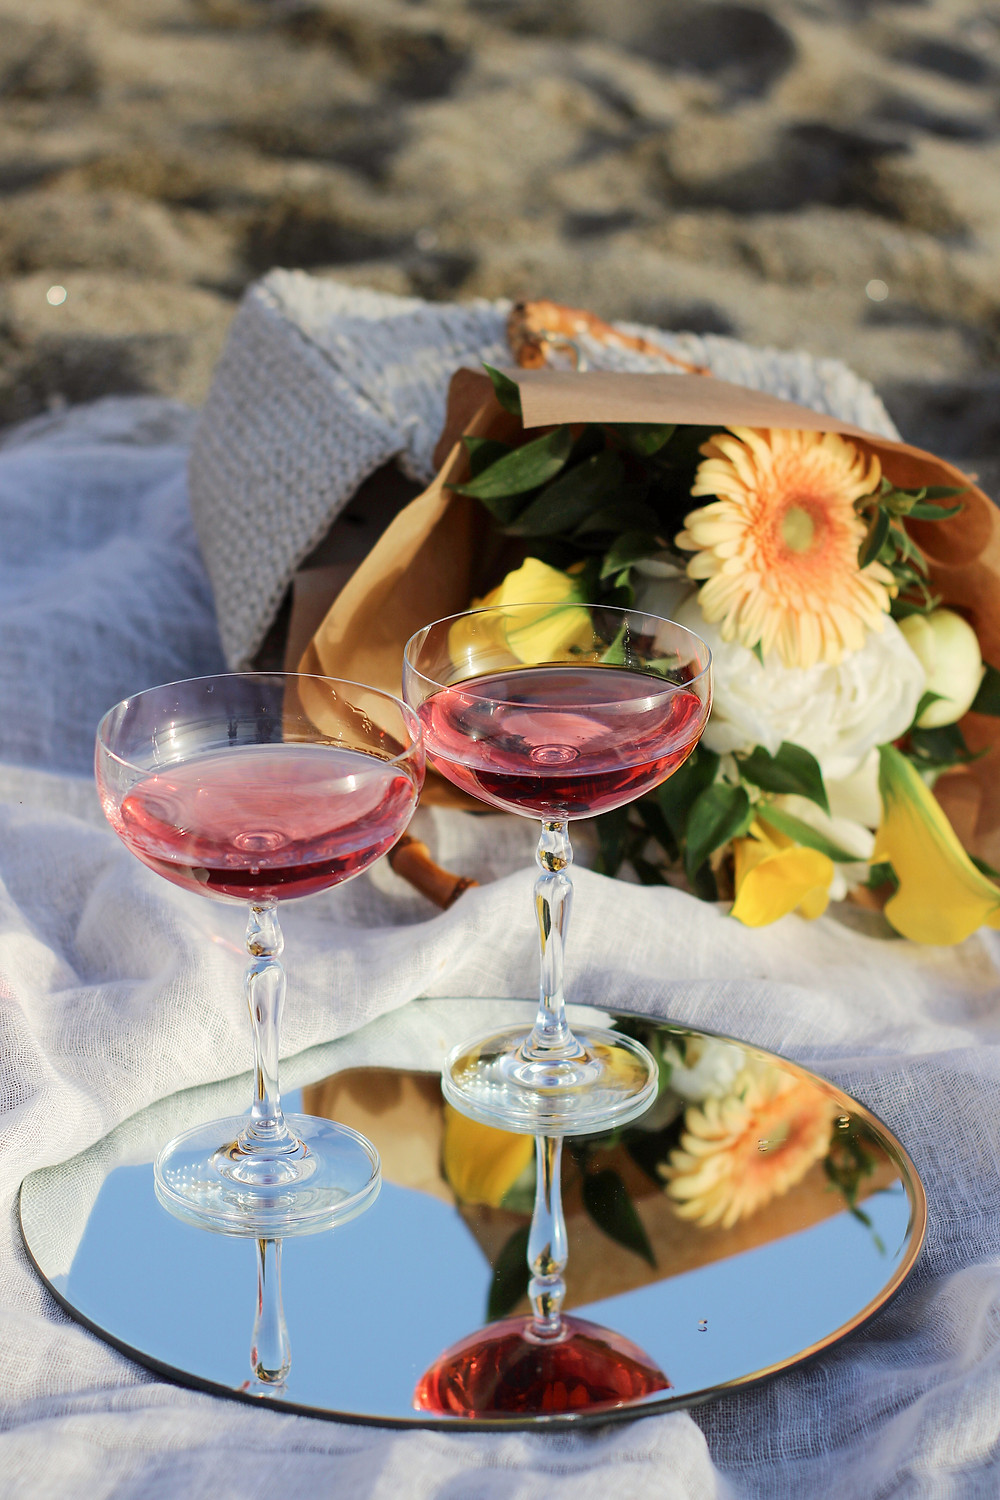 martini glasses on a mirror with pink liquid inside beside some flowers resting on a blanket on a beach